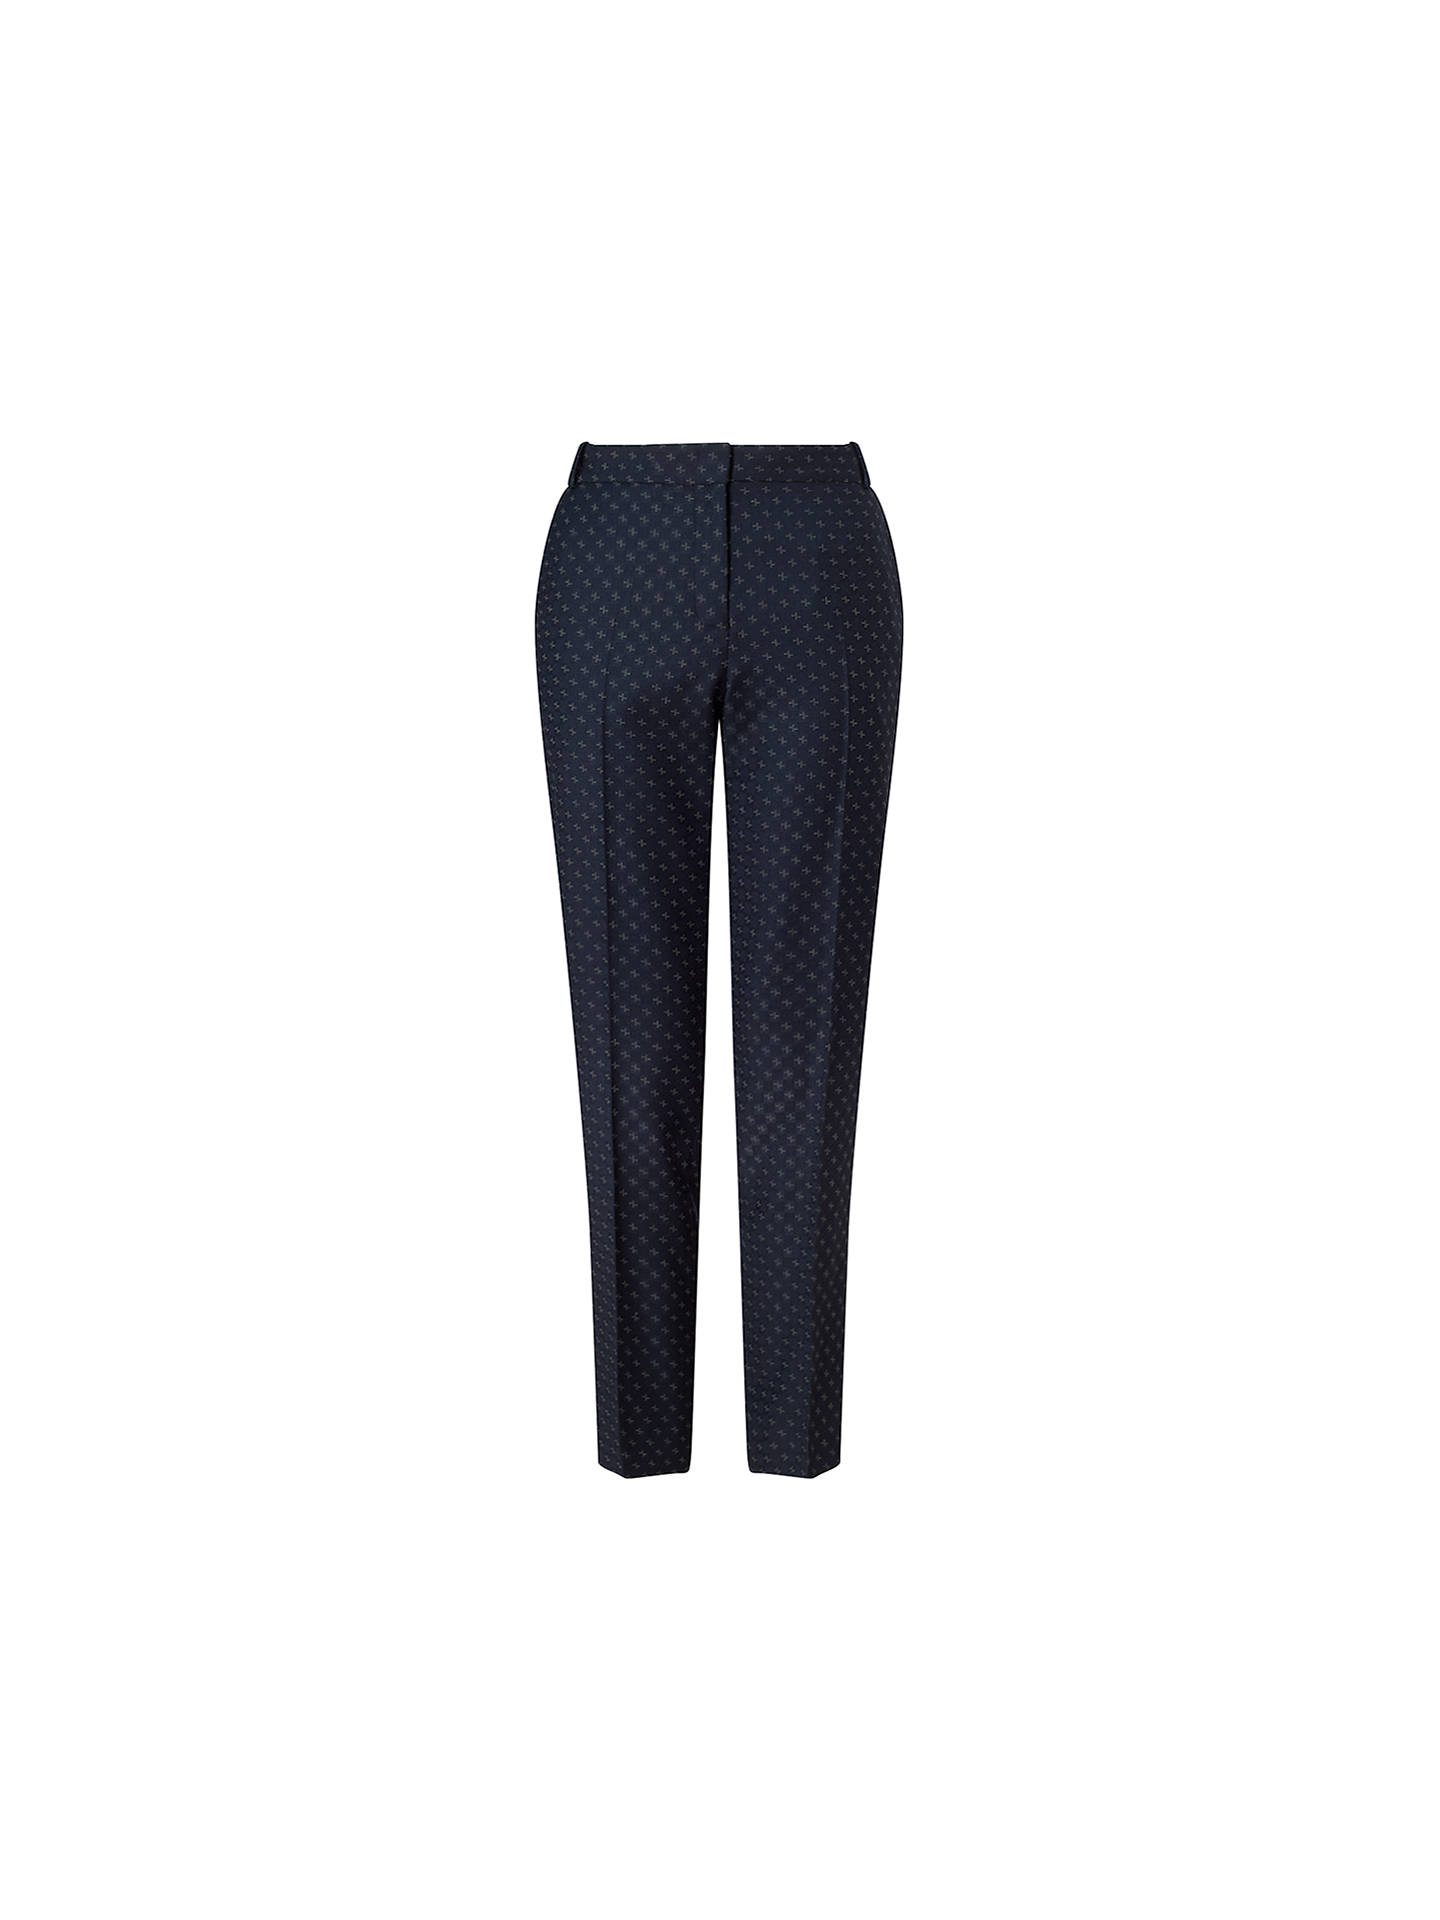 BuyJigsaw Portofino Cross Tailoring Wool Trousers, Navy, 6 Online at johnlewis.com